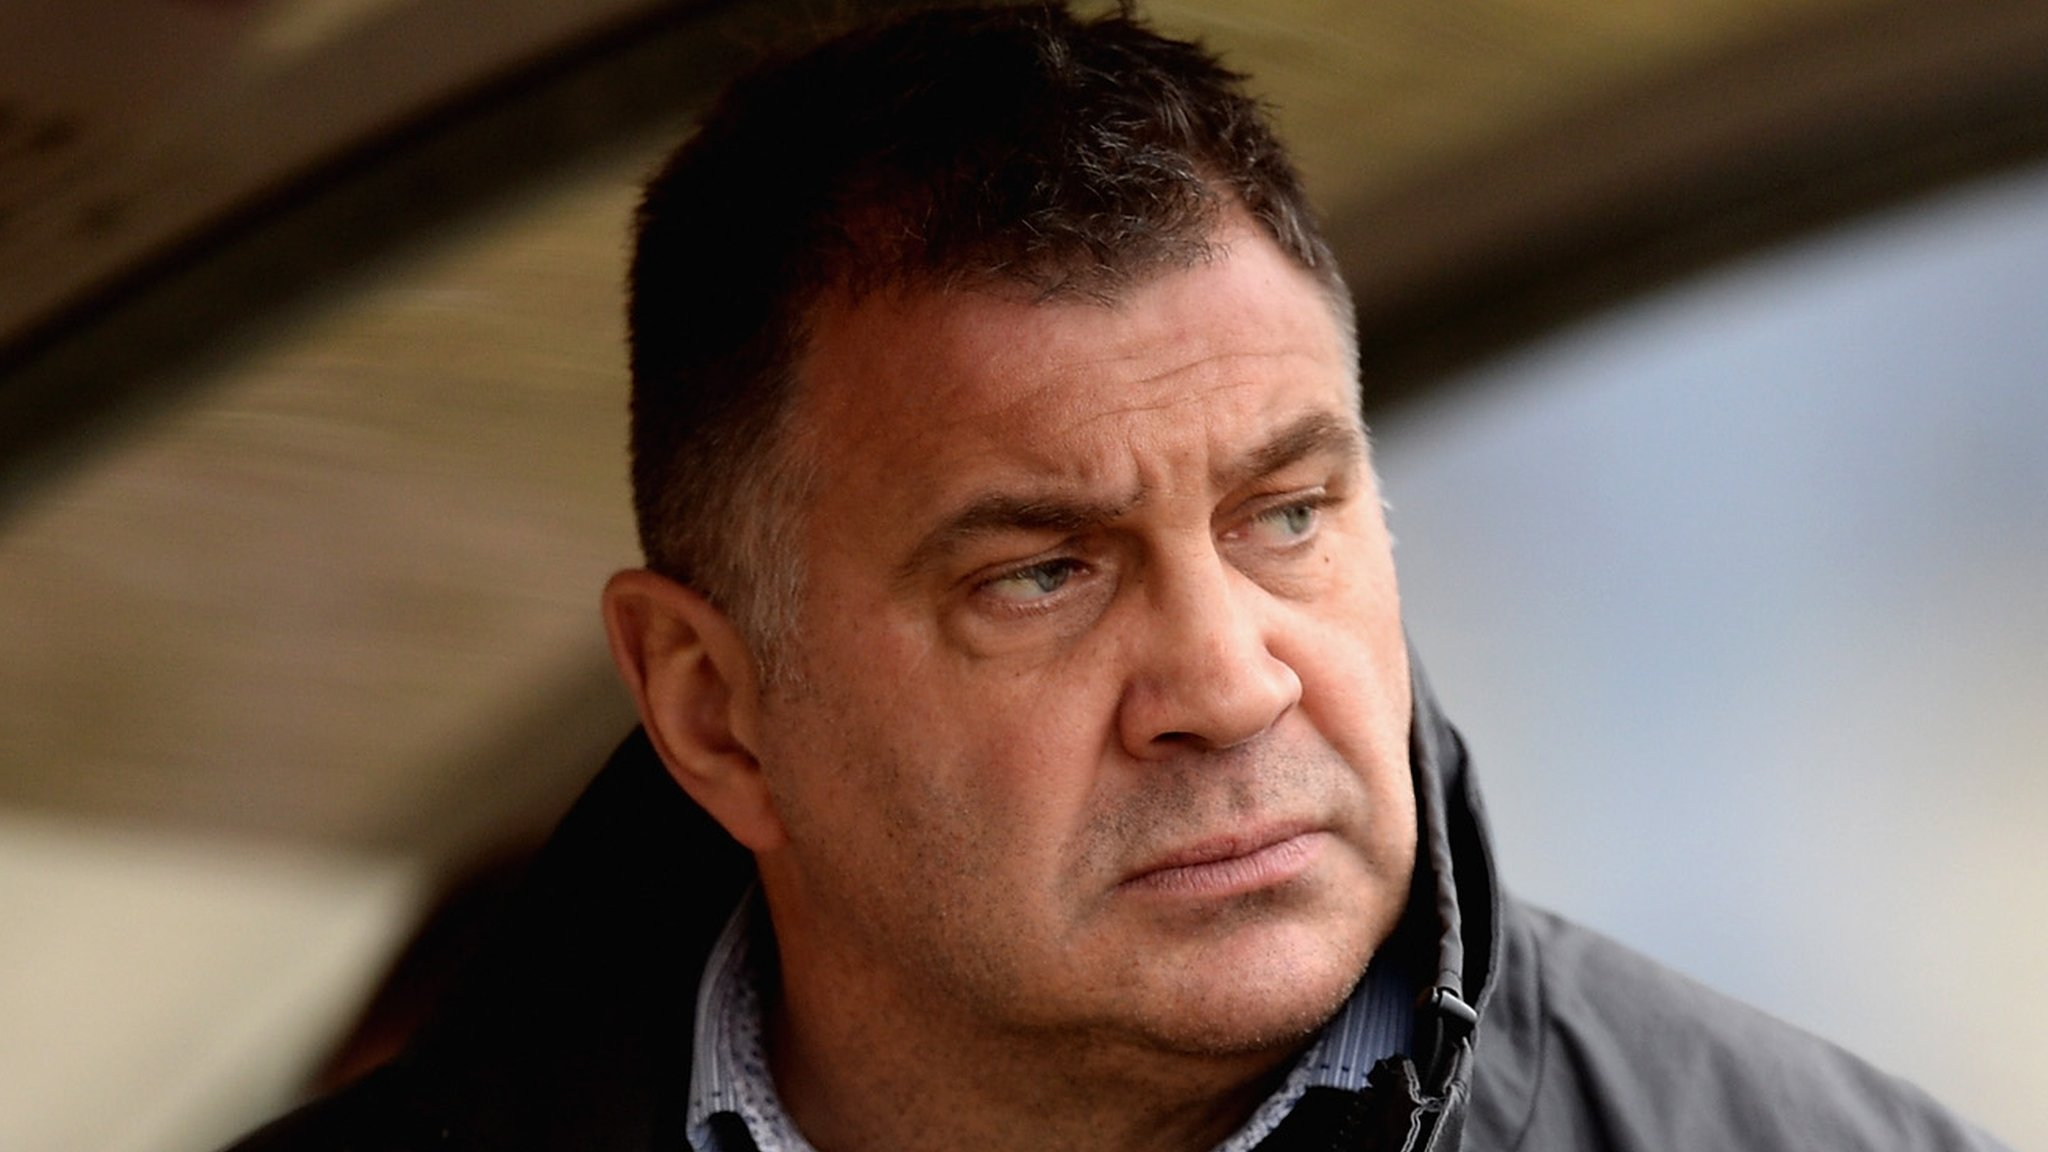 Wigan coach Wane to switch codes and take role with Scotland